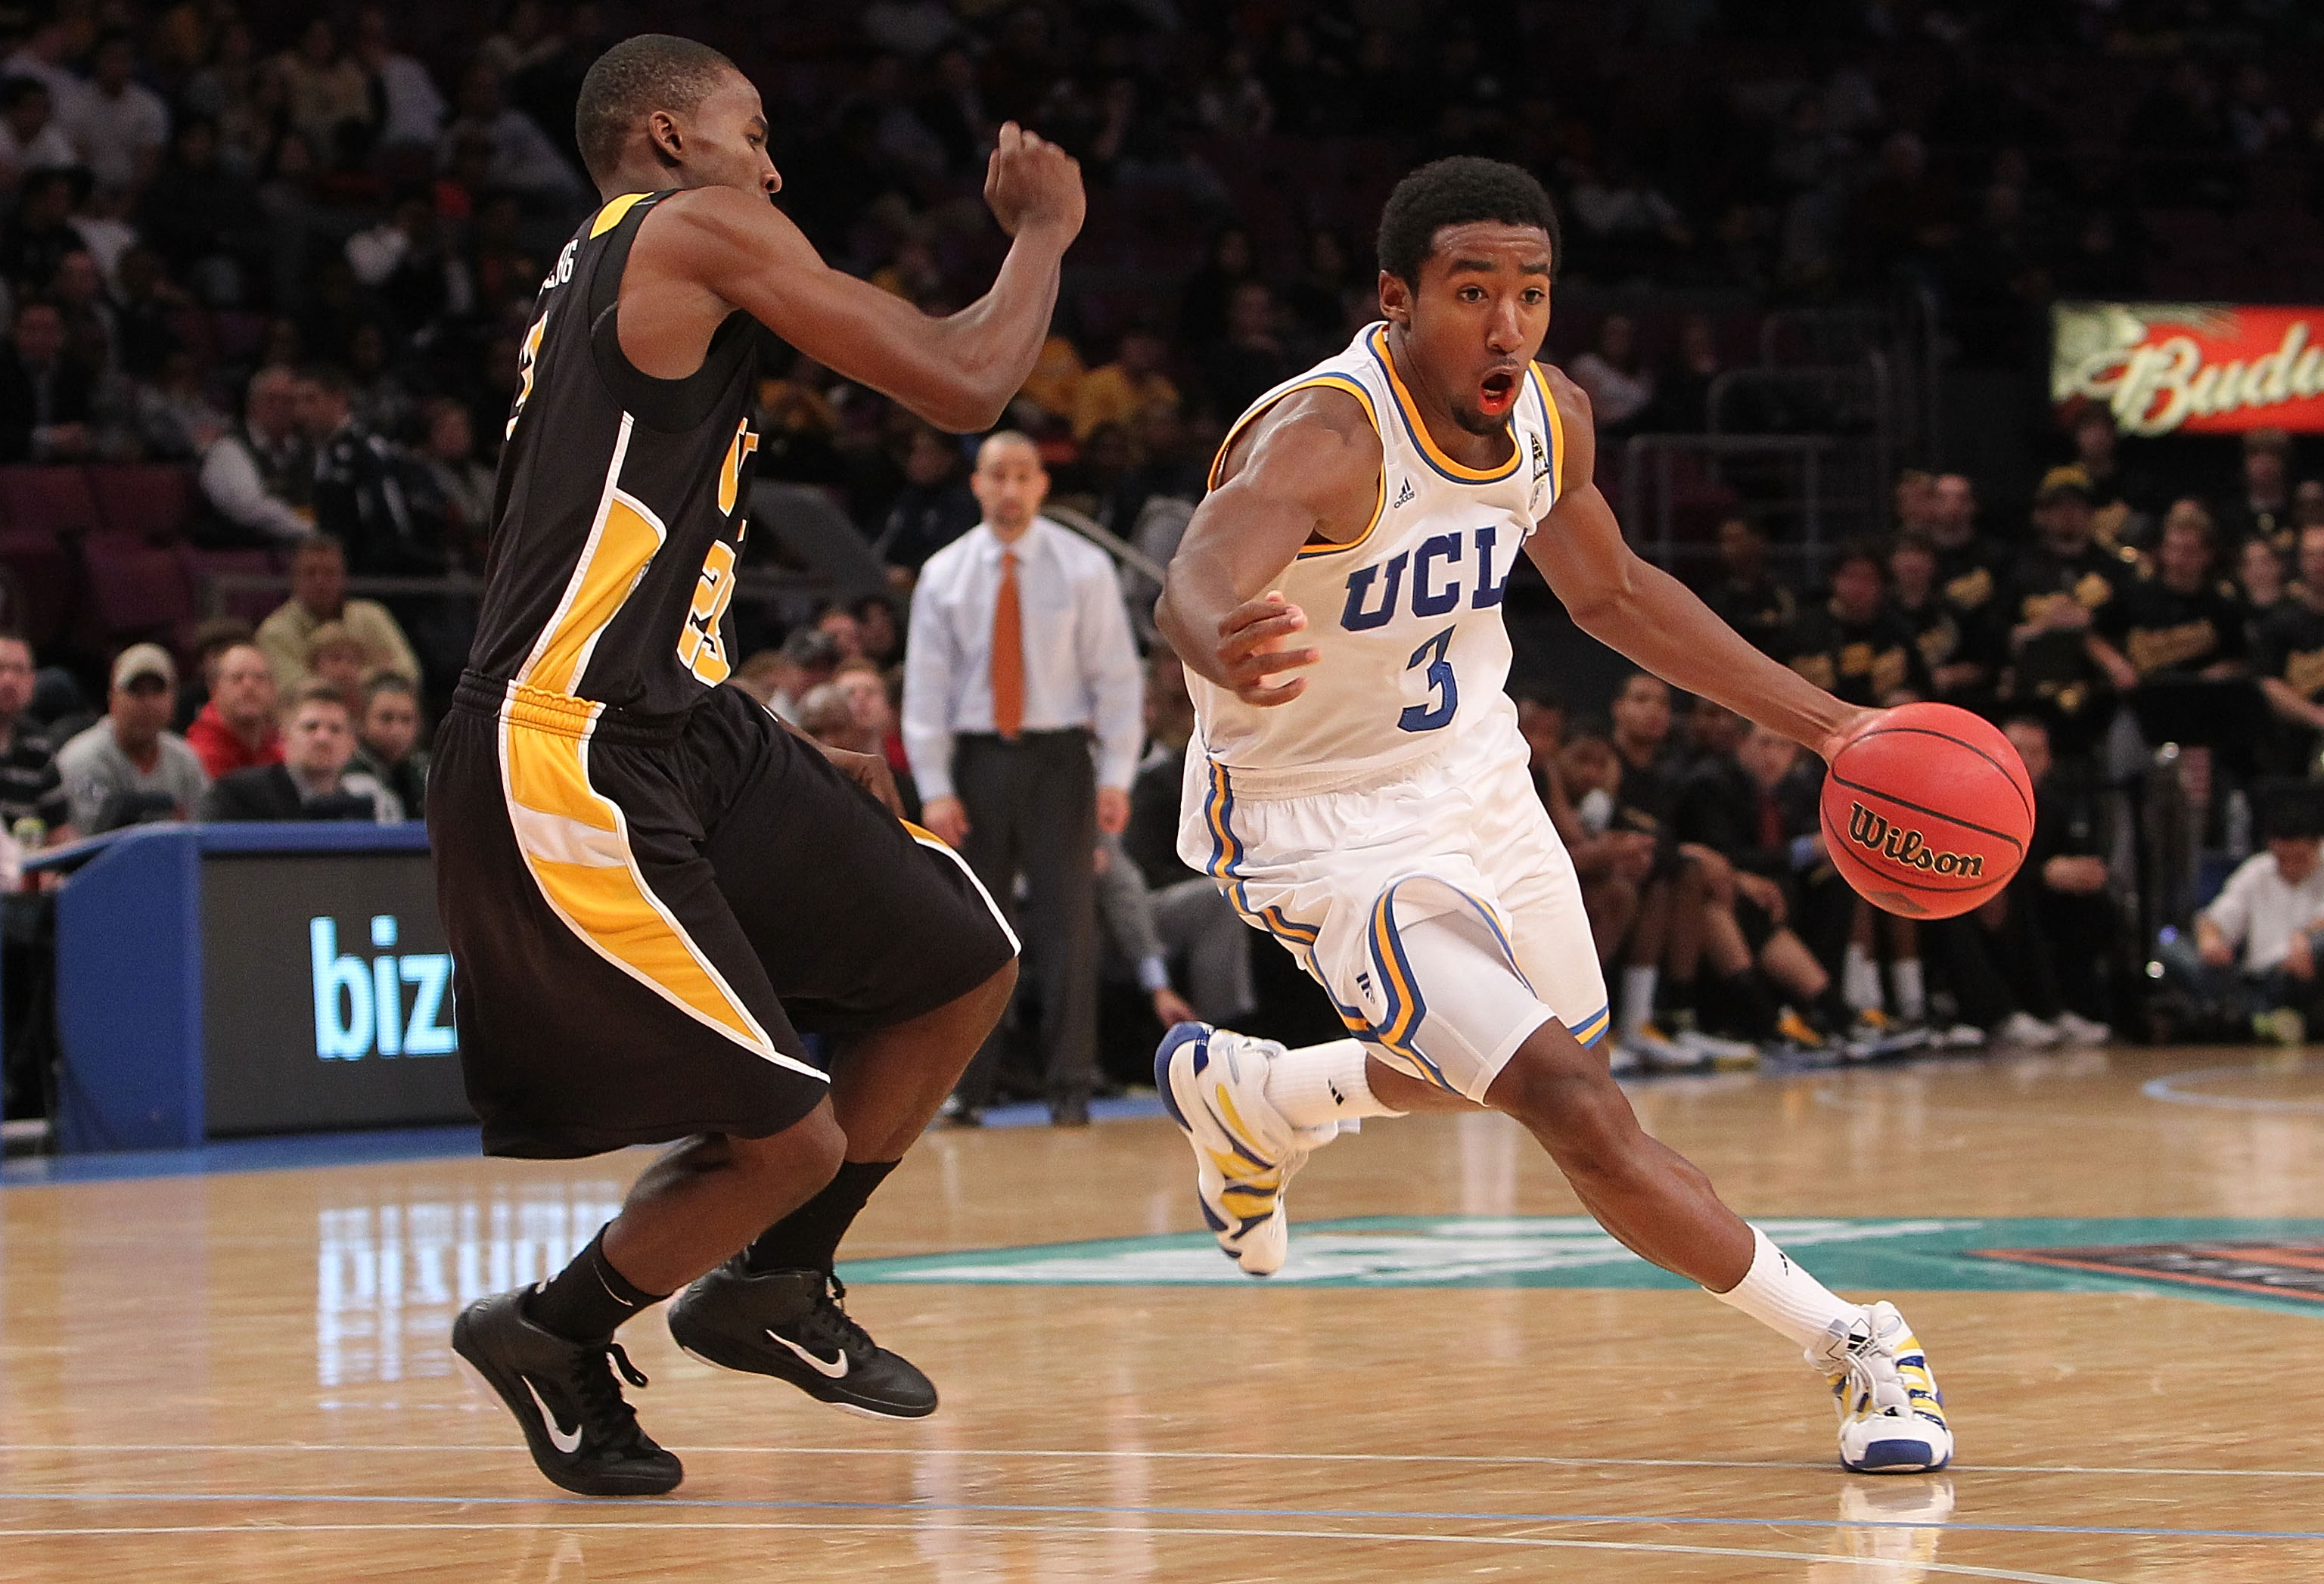 NEW YORK - NOVEMBER 26: Malcolm Lee #3 of the UCLA Bruins dribbles the ball against Rob Brandenberg #23 of the Virginia Commonwealth Rams during their consolation game at Madison Square Garden on November 26, 2010 in New York City.  (Photo by Nick Laham/G